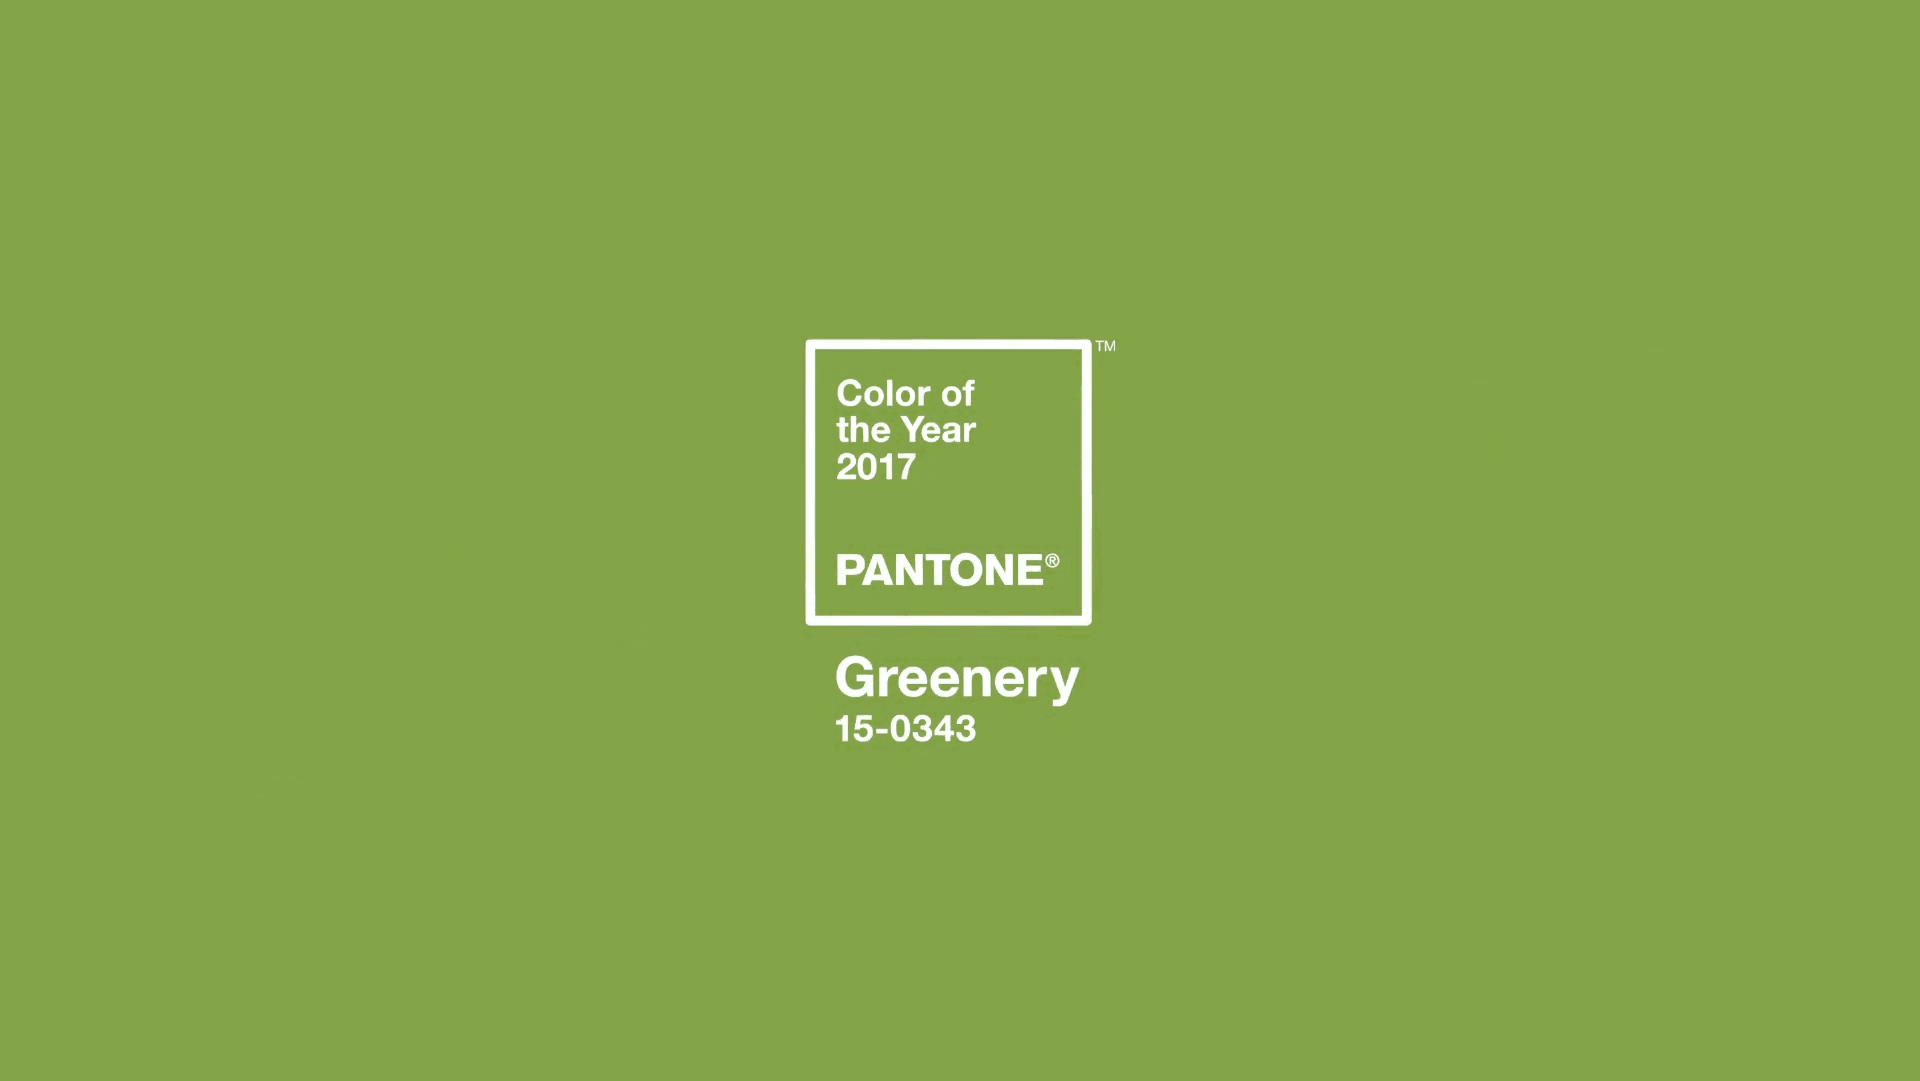 Color of The Year 2017 - Pantone Greenery